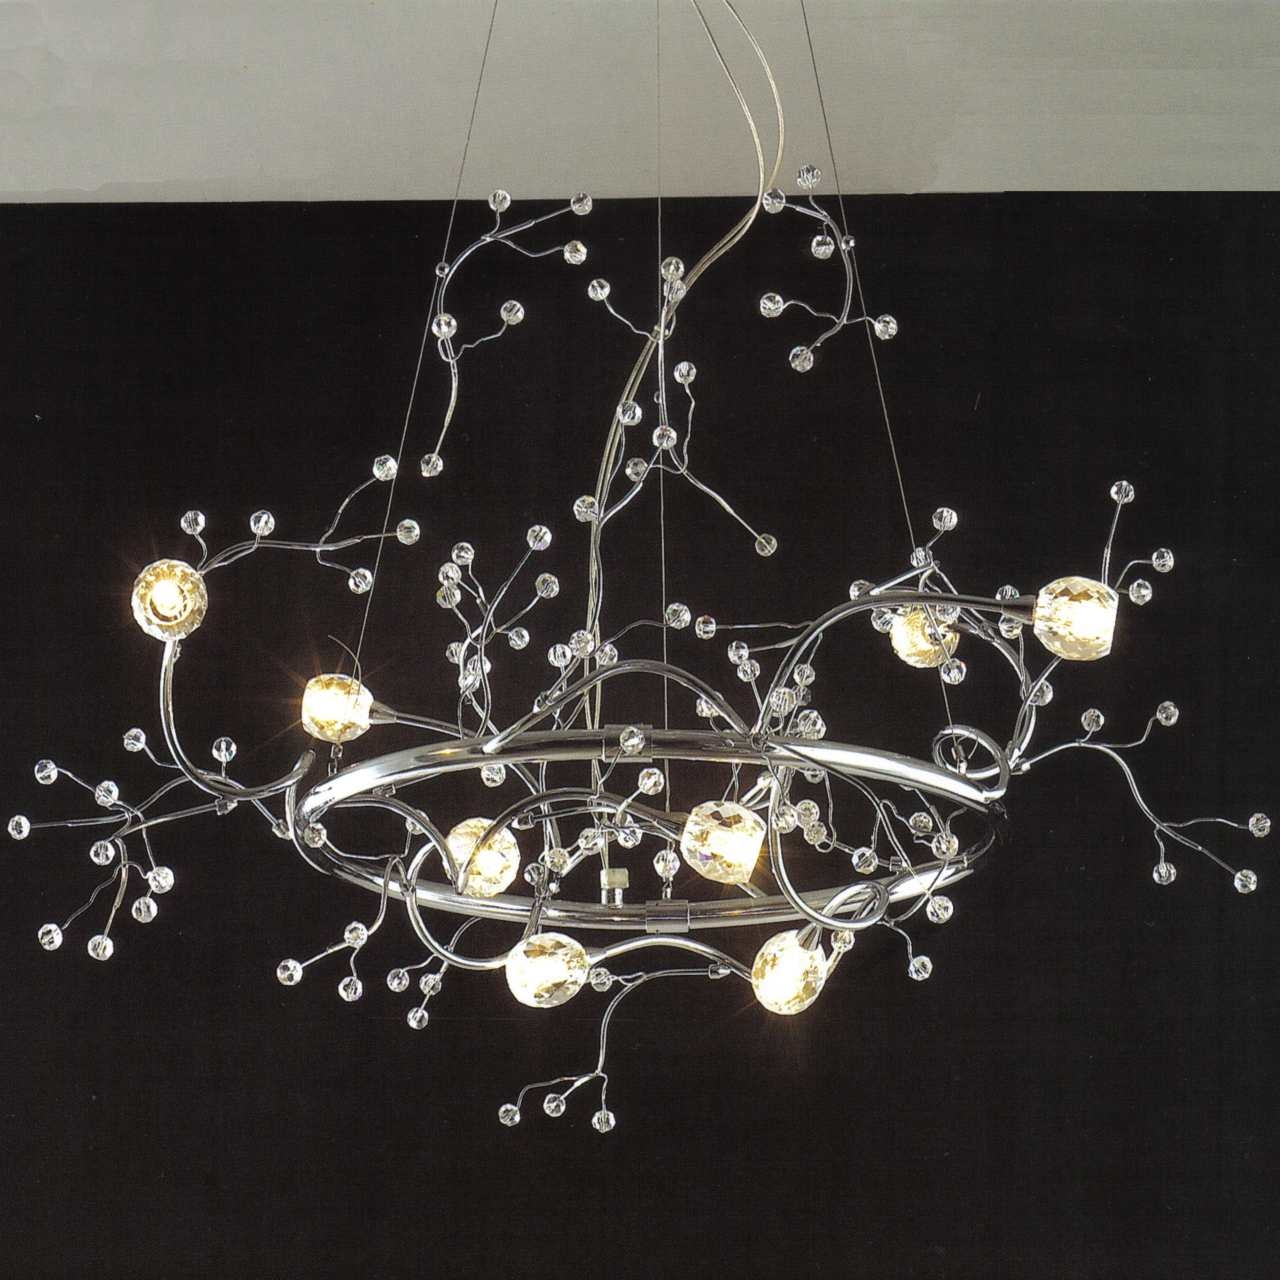 Brizzo Lighting Stores 32 Albero Modern Crystal Round Branch With Branch Crystal Chandelier (Image 6 of 15)